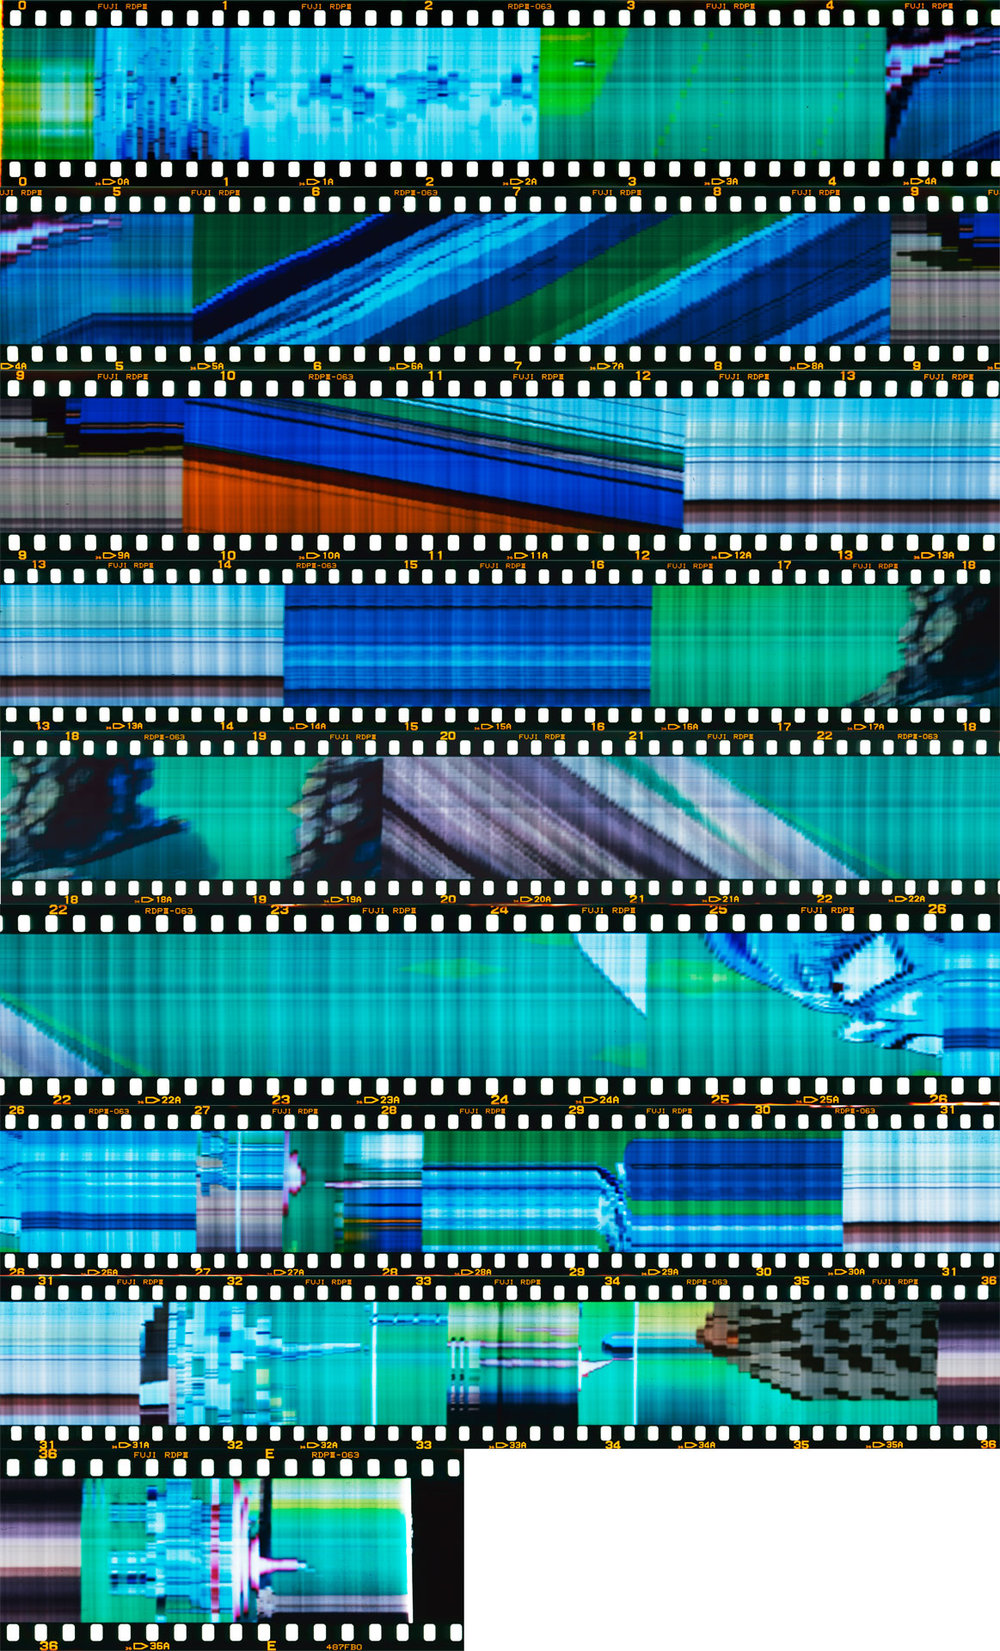 """55 Seconds of Dragon Ball Z"" 2015.  Nine Archival Pigment Prints from 35mm Film.  85x44"""